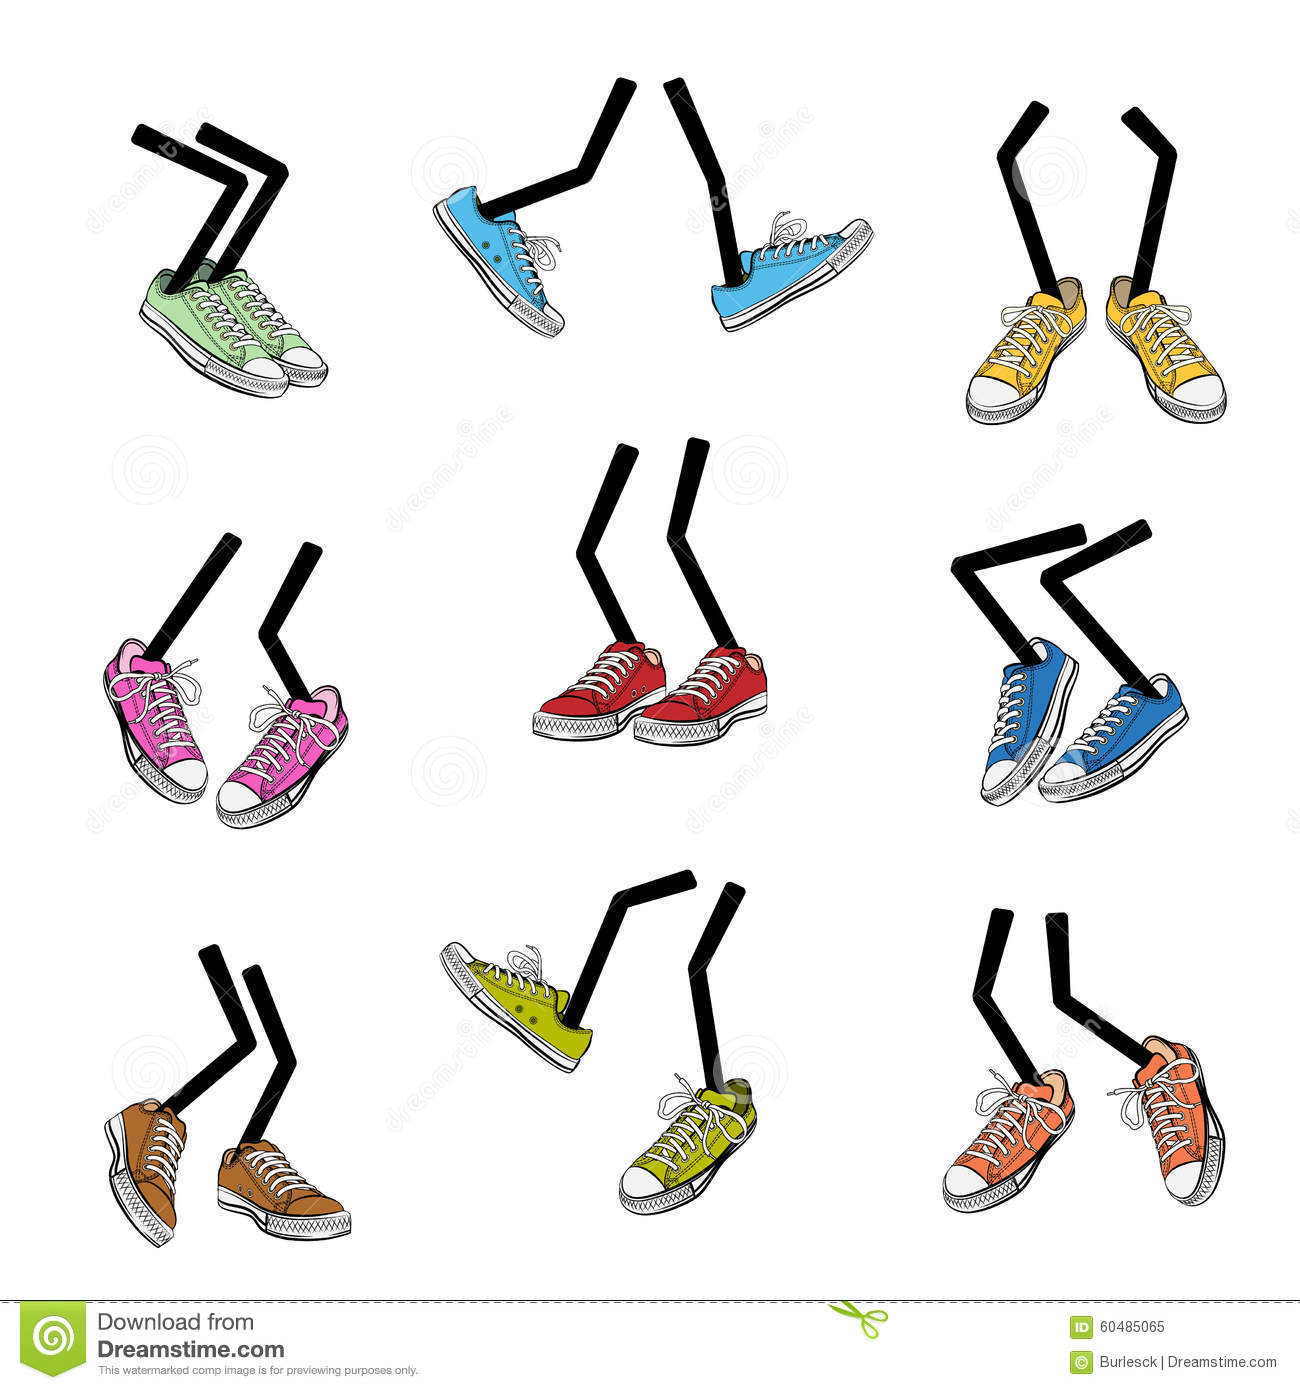 Black Bird Mascot besides Clipart Four 3 besides Car Icon 3 furthermore Stock Illustration Cartoon Walking Feet Step Sole Sneaker Clothing Leg Fashion Cute  ic Vector Illustration Image60485065 besides 56116. on cartoon love clipart